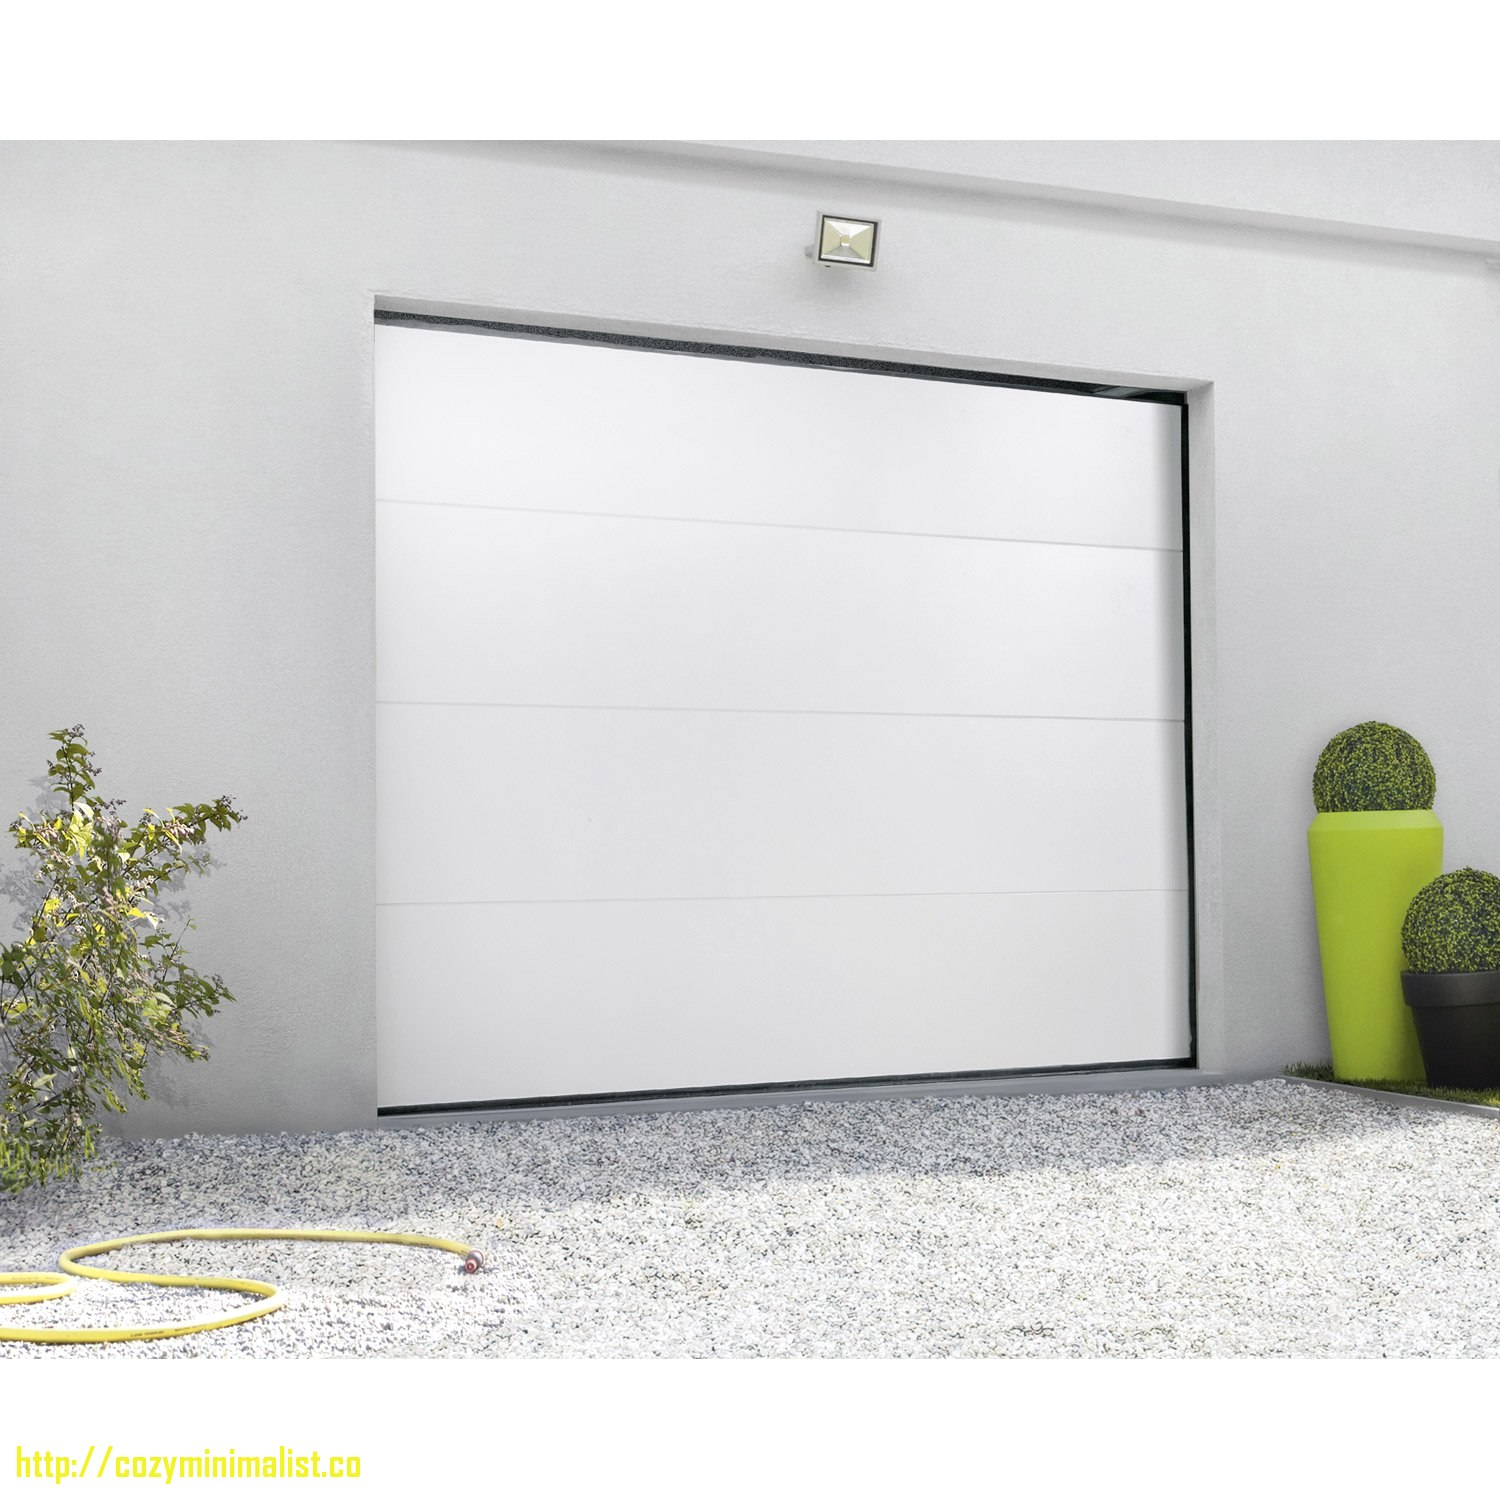 Porte de garage sectionnelle motoris e lapeyre isolation id es - Porte garage sectionnelle motorisee ...